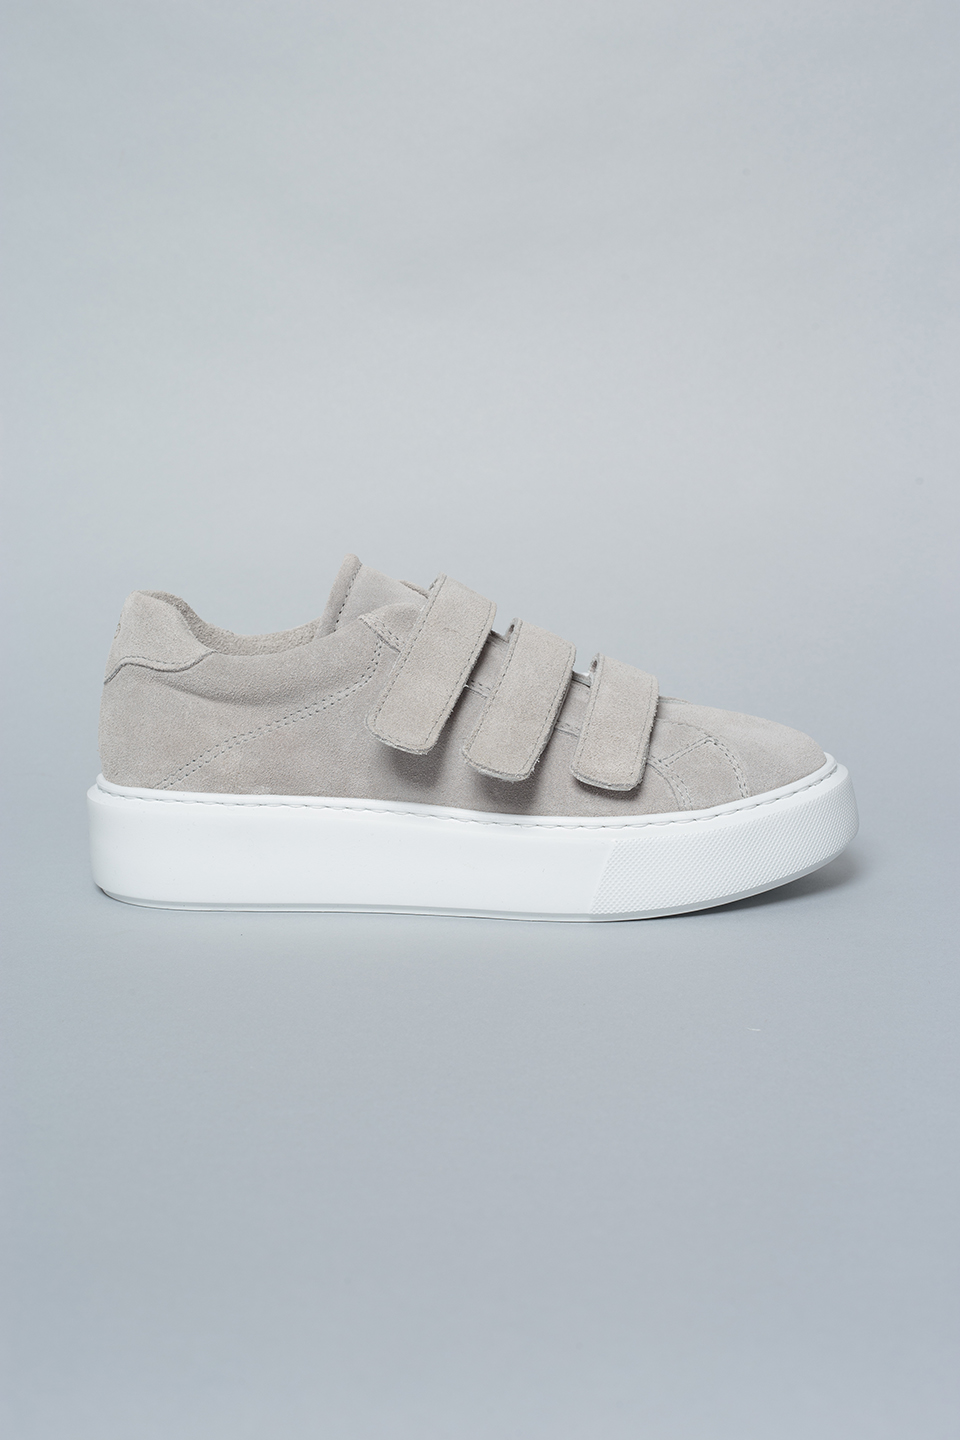 CPH422 crosta light grey - alternative 1